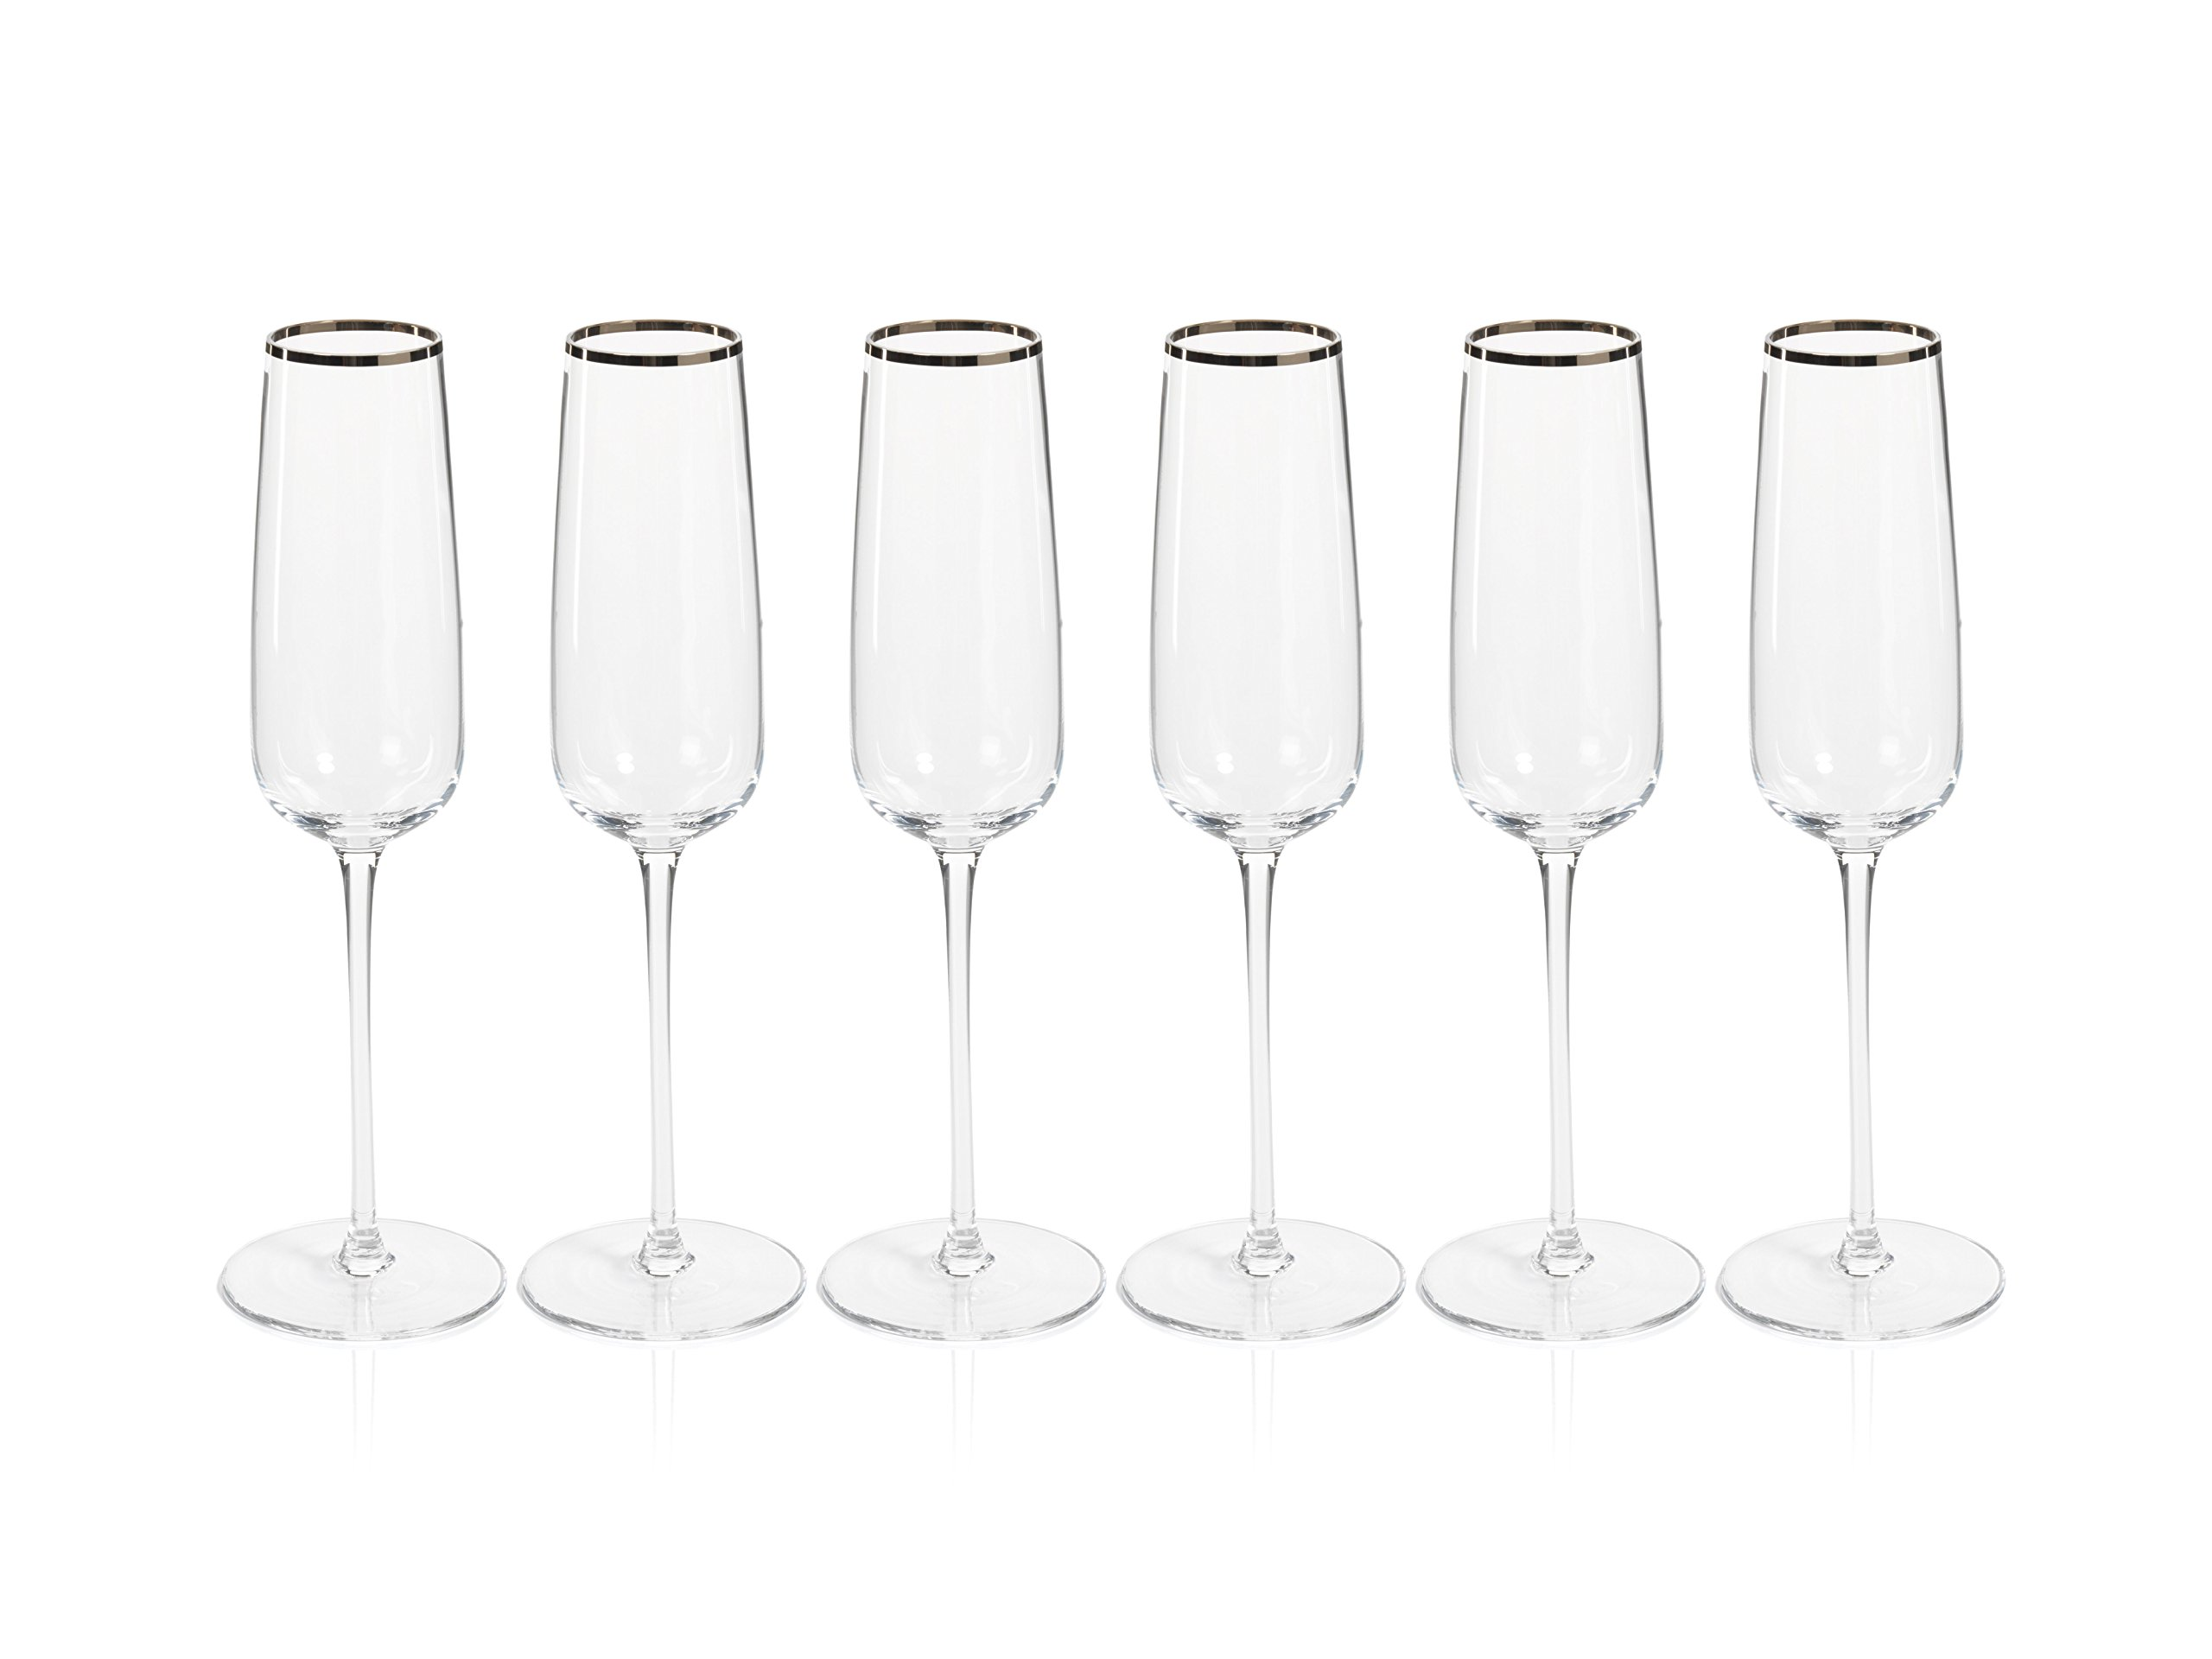 Zodax London 10.5'' Tall Champagne Flutes with Platinum Rim (Set of 6) Glasses, 6 Piece